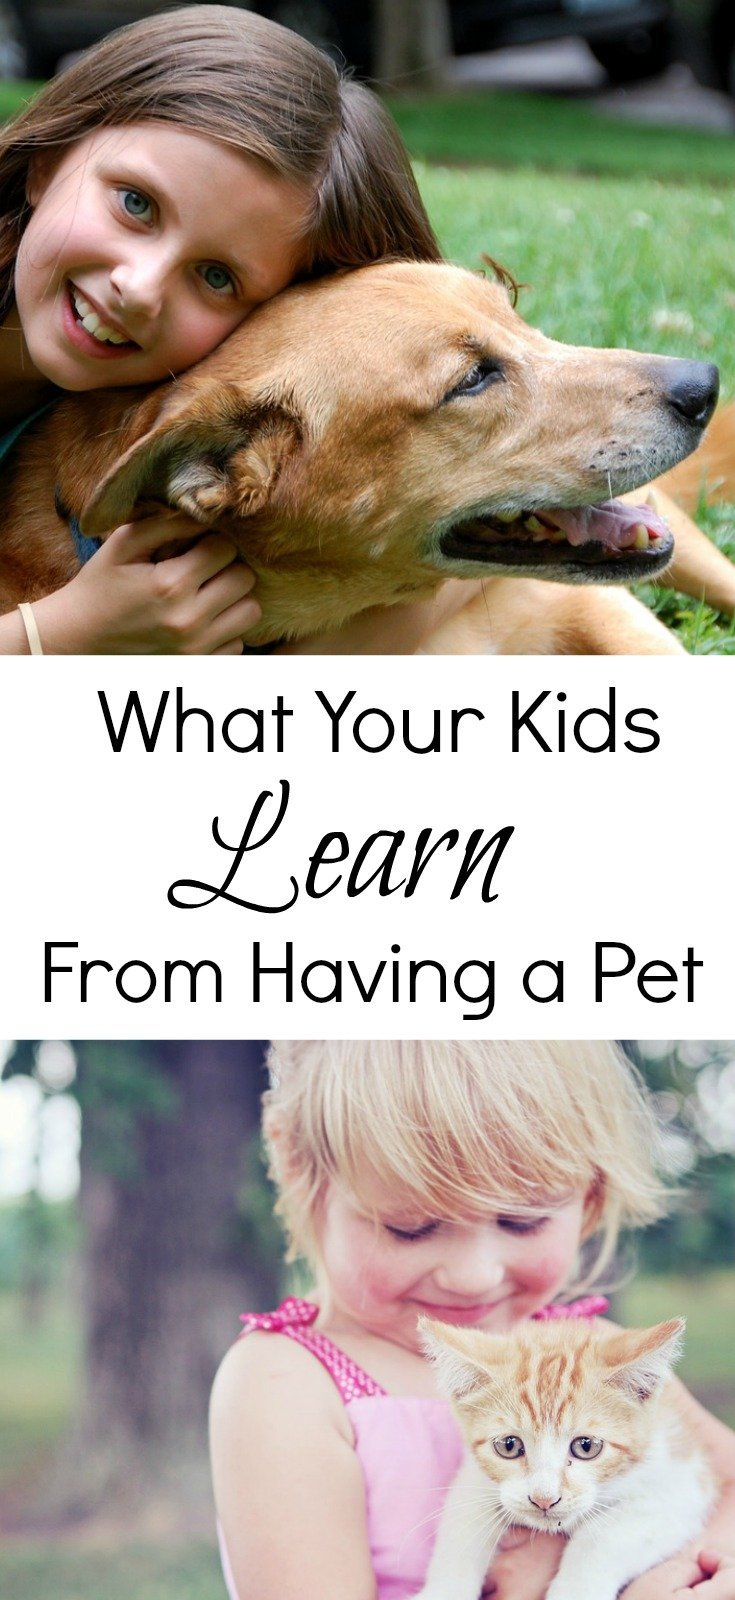 What your kids can learn from having a pet, the life lessons and responsibilities it teaches them and the types of children it can help